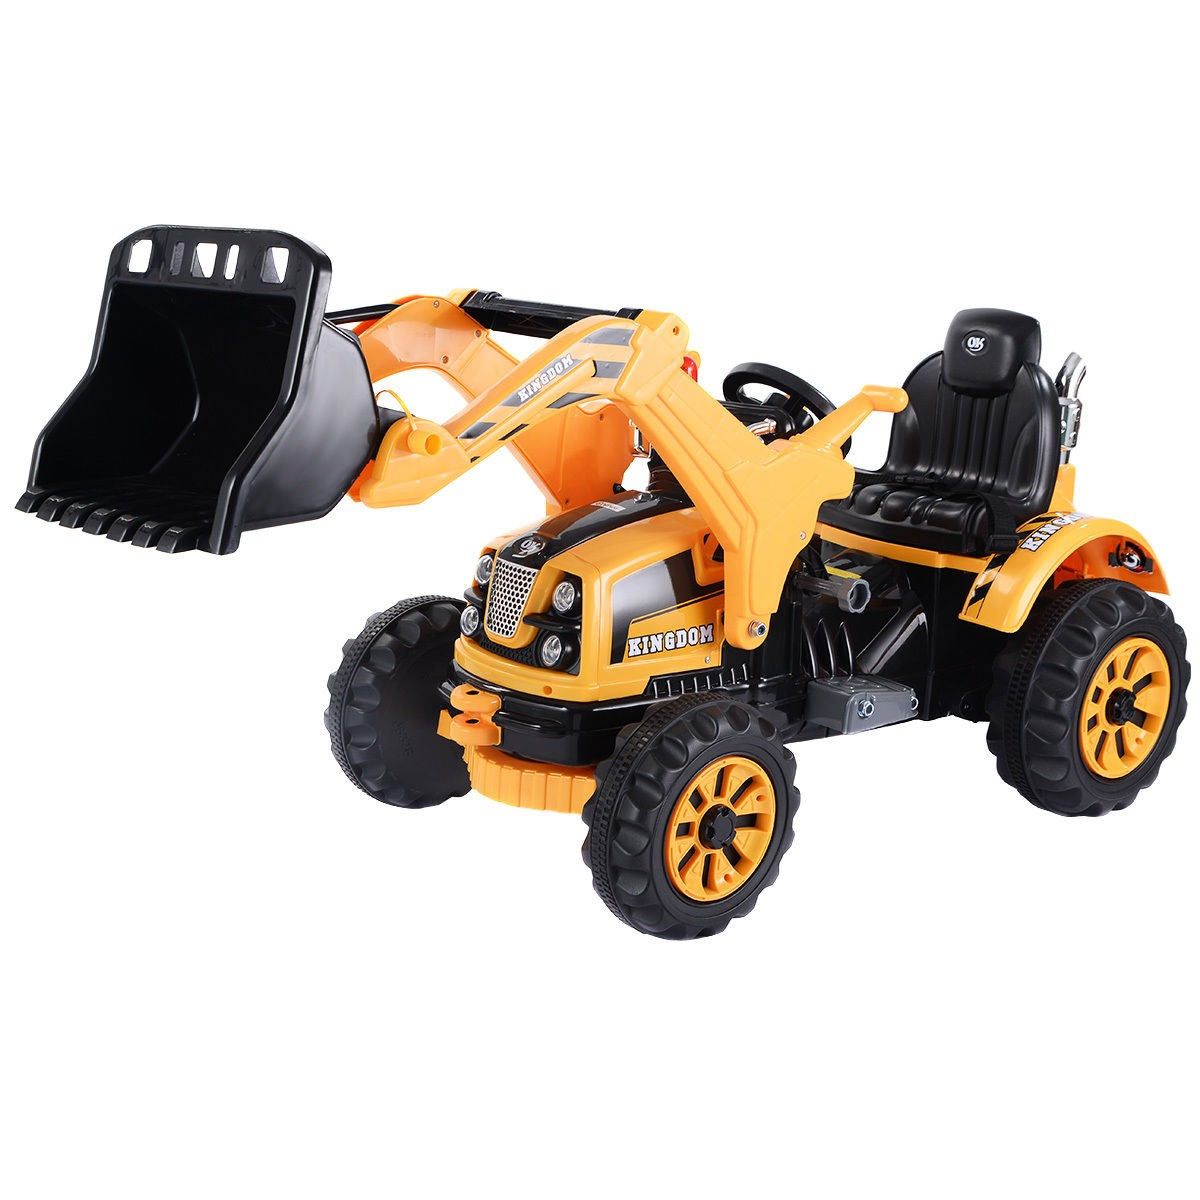 12V Battery Powered Kids Ride On Excavator Truck With Fro...